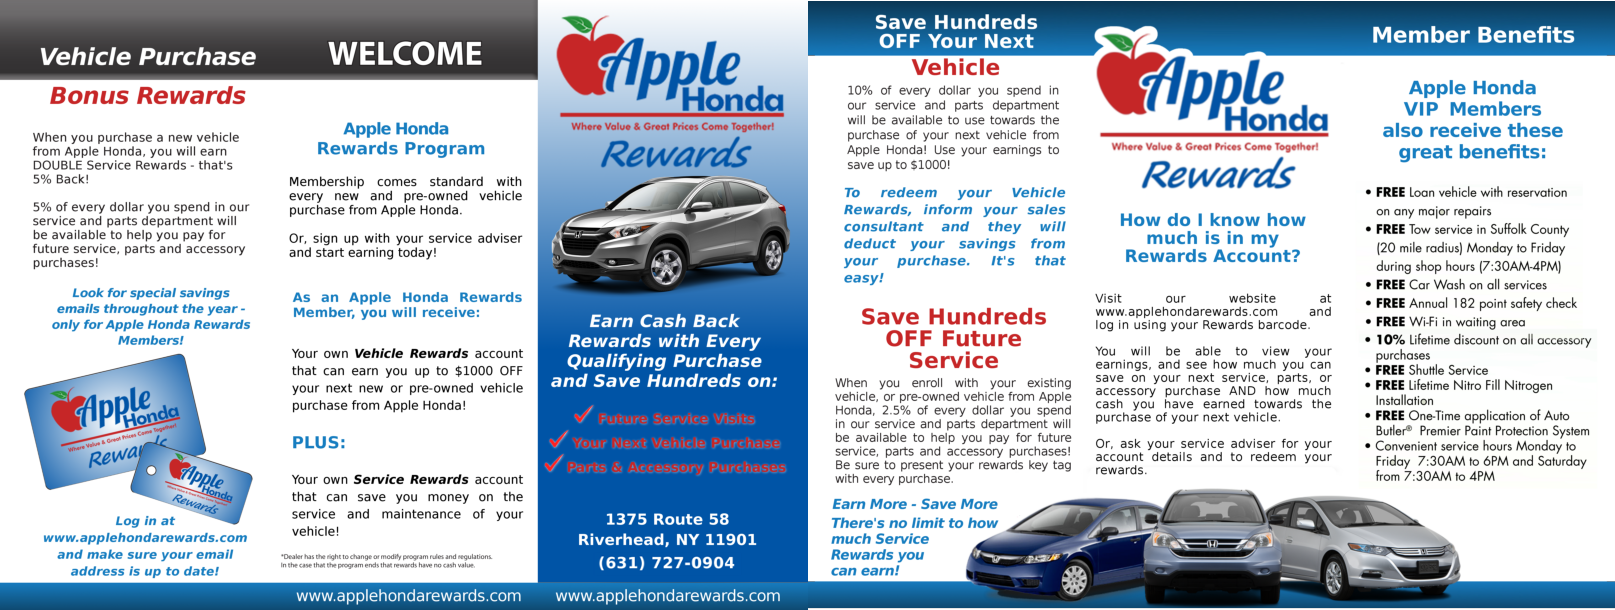 Apple Honda Rewards Card Is Property Of Apple Honda. All Services And  Promotions Are Subject To Change Without Customer Notification.